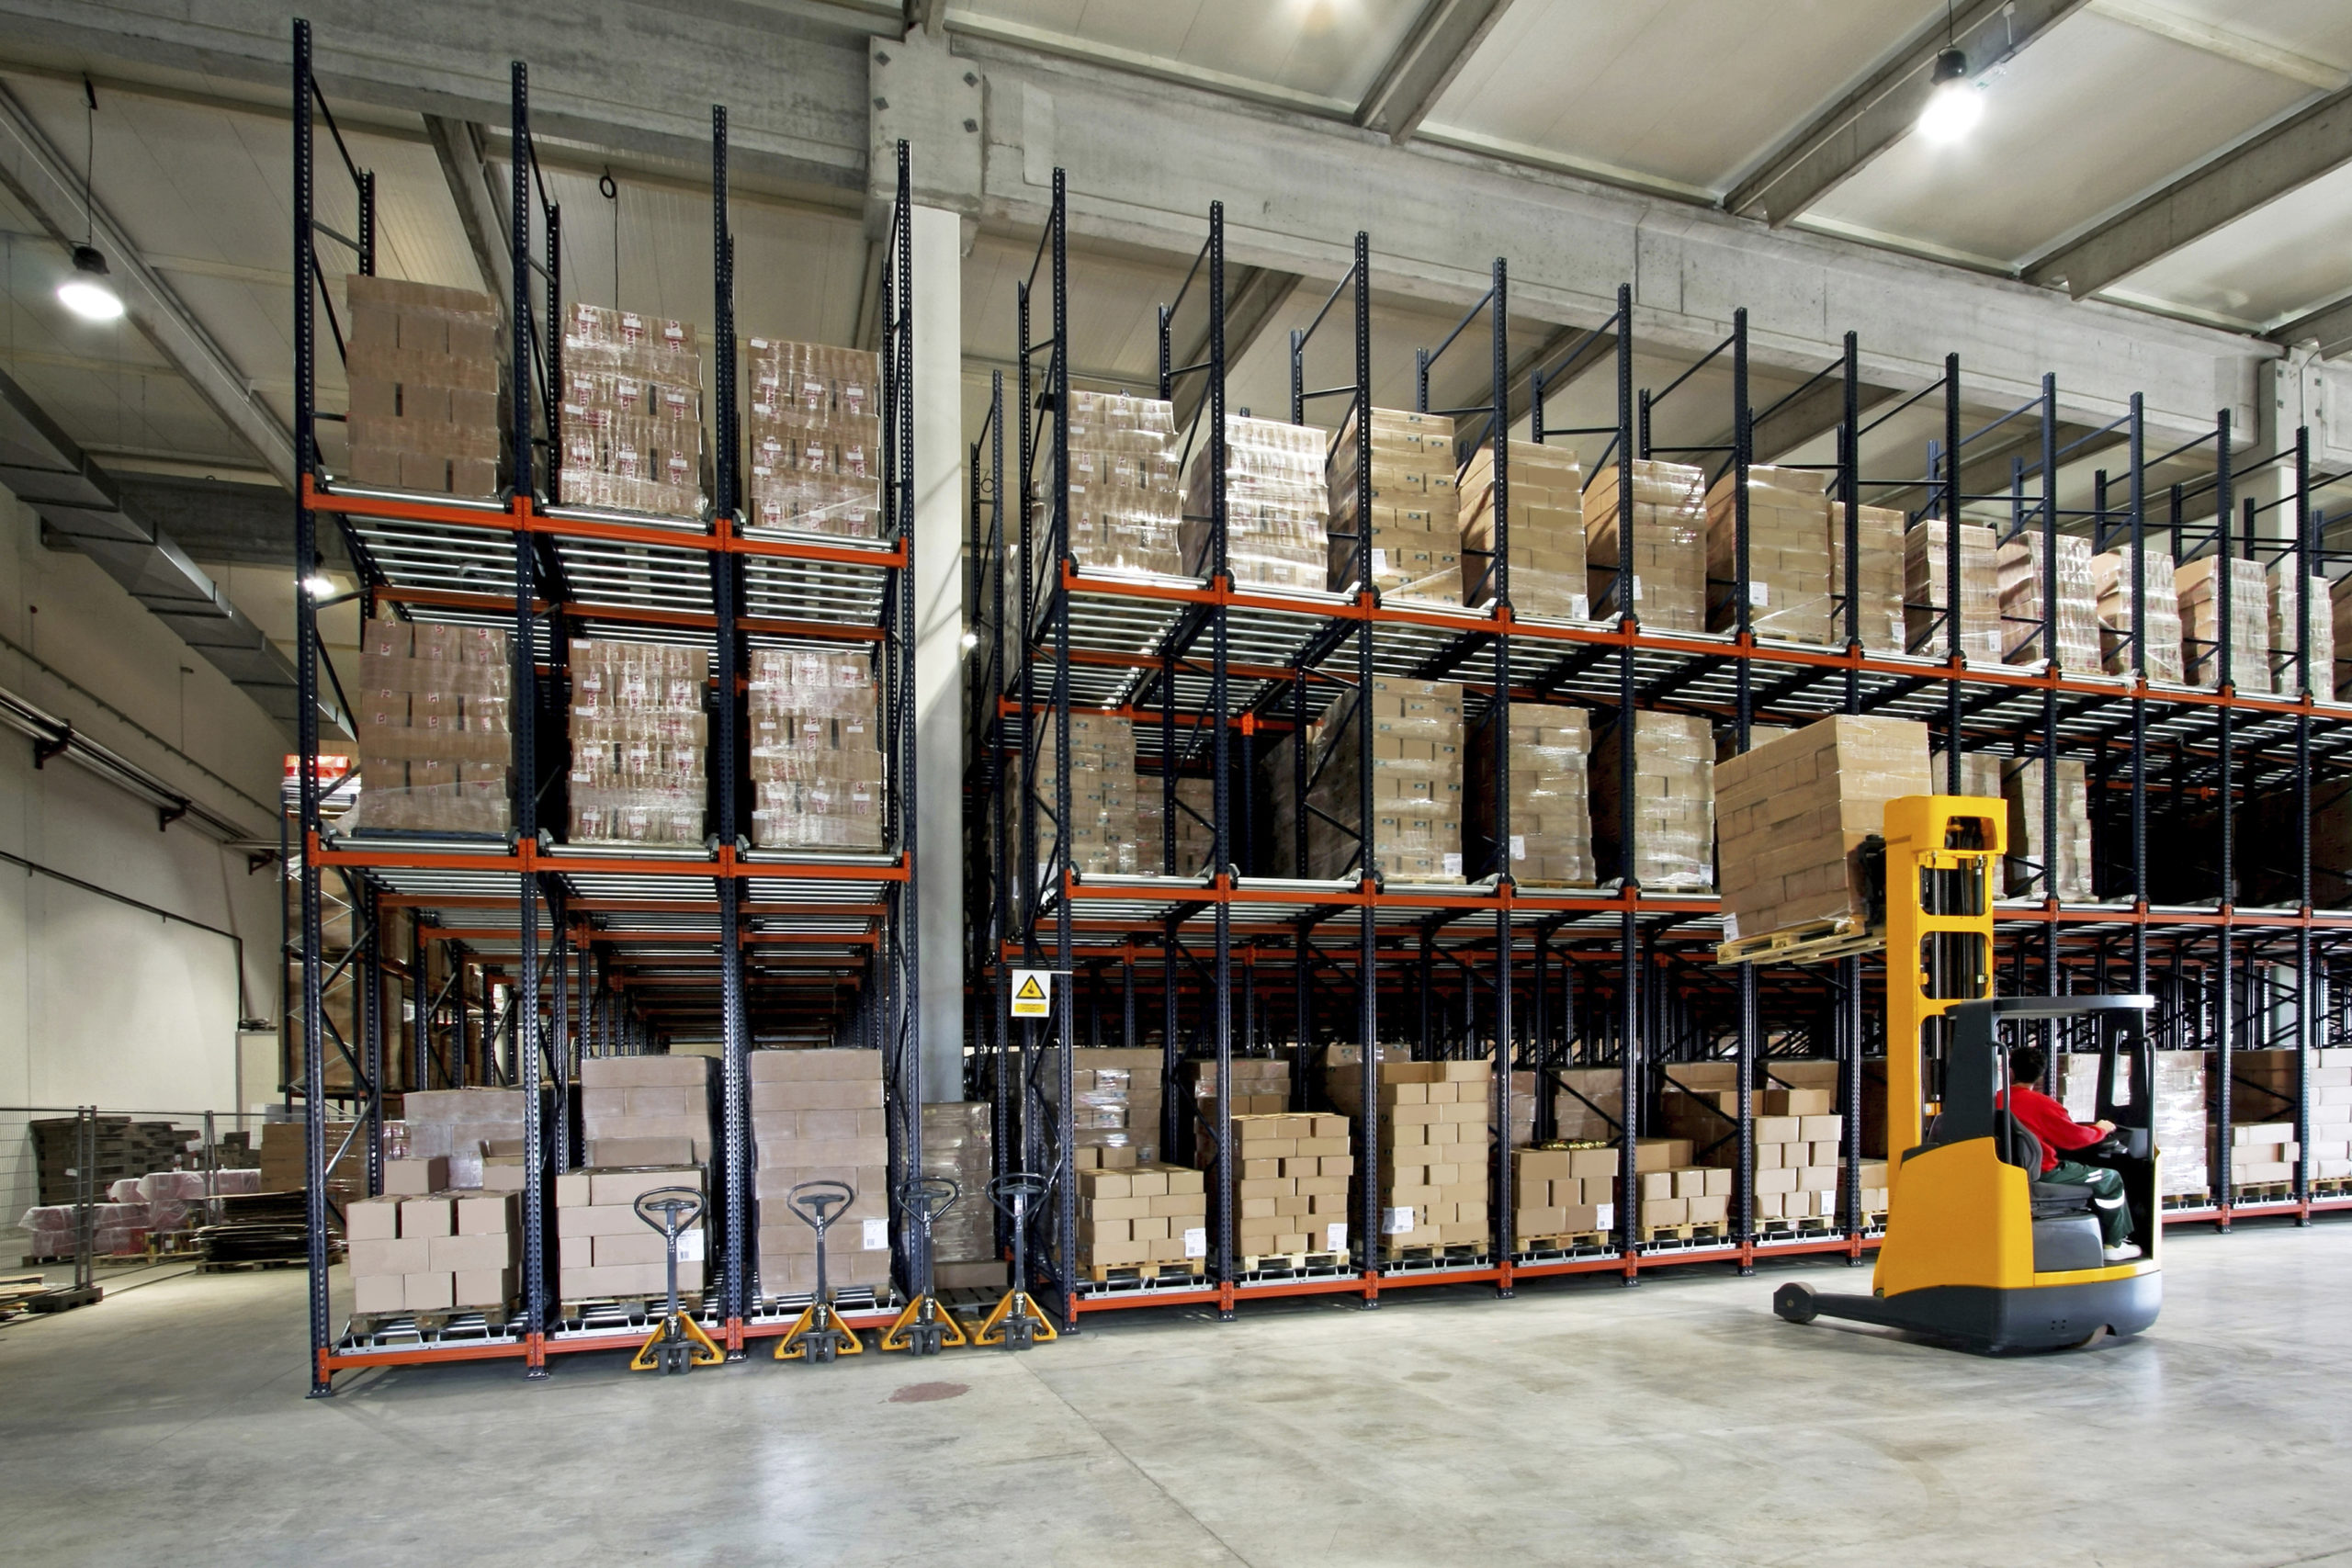 Forklift delivering boxes in manufacturing warehouse.